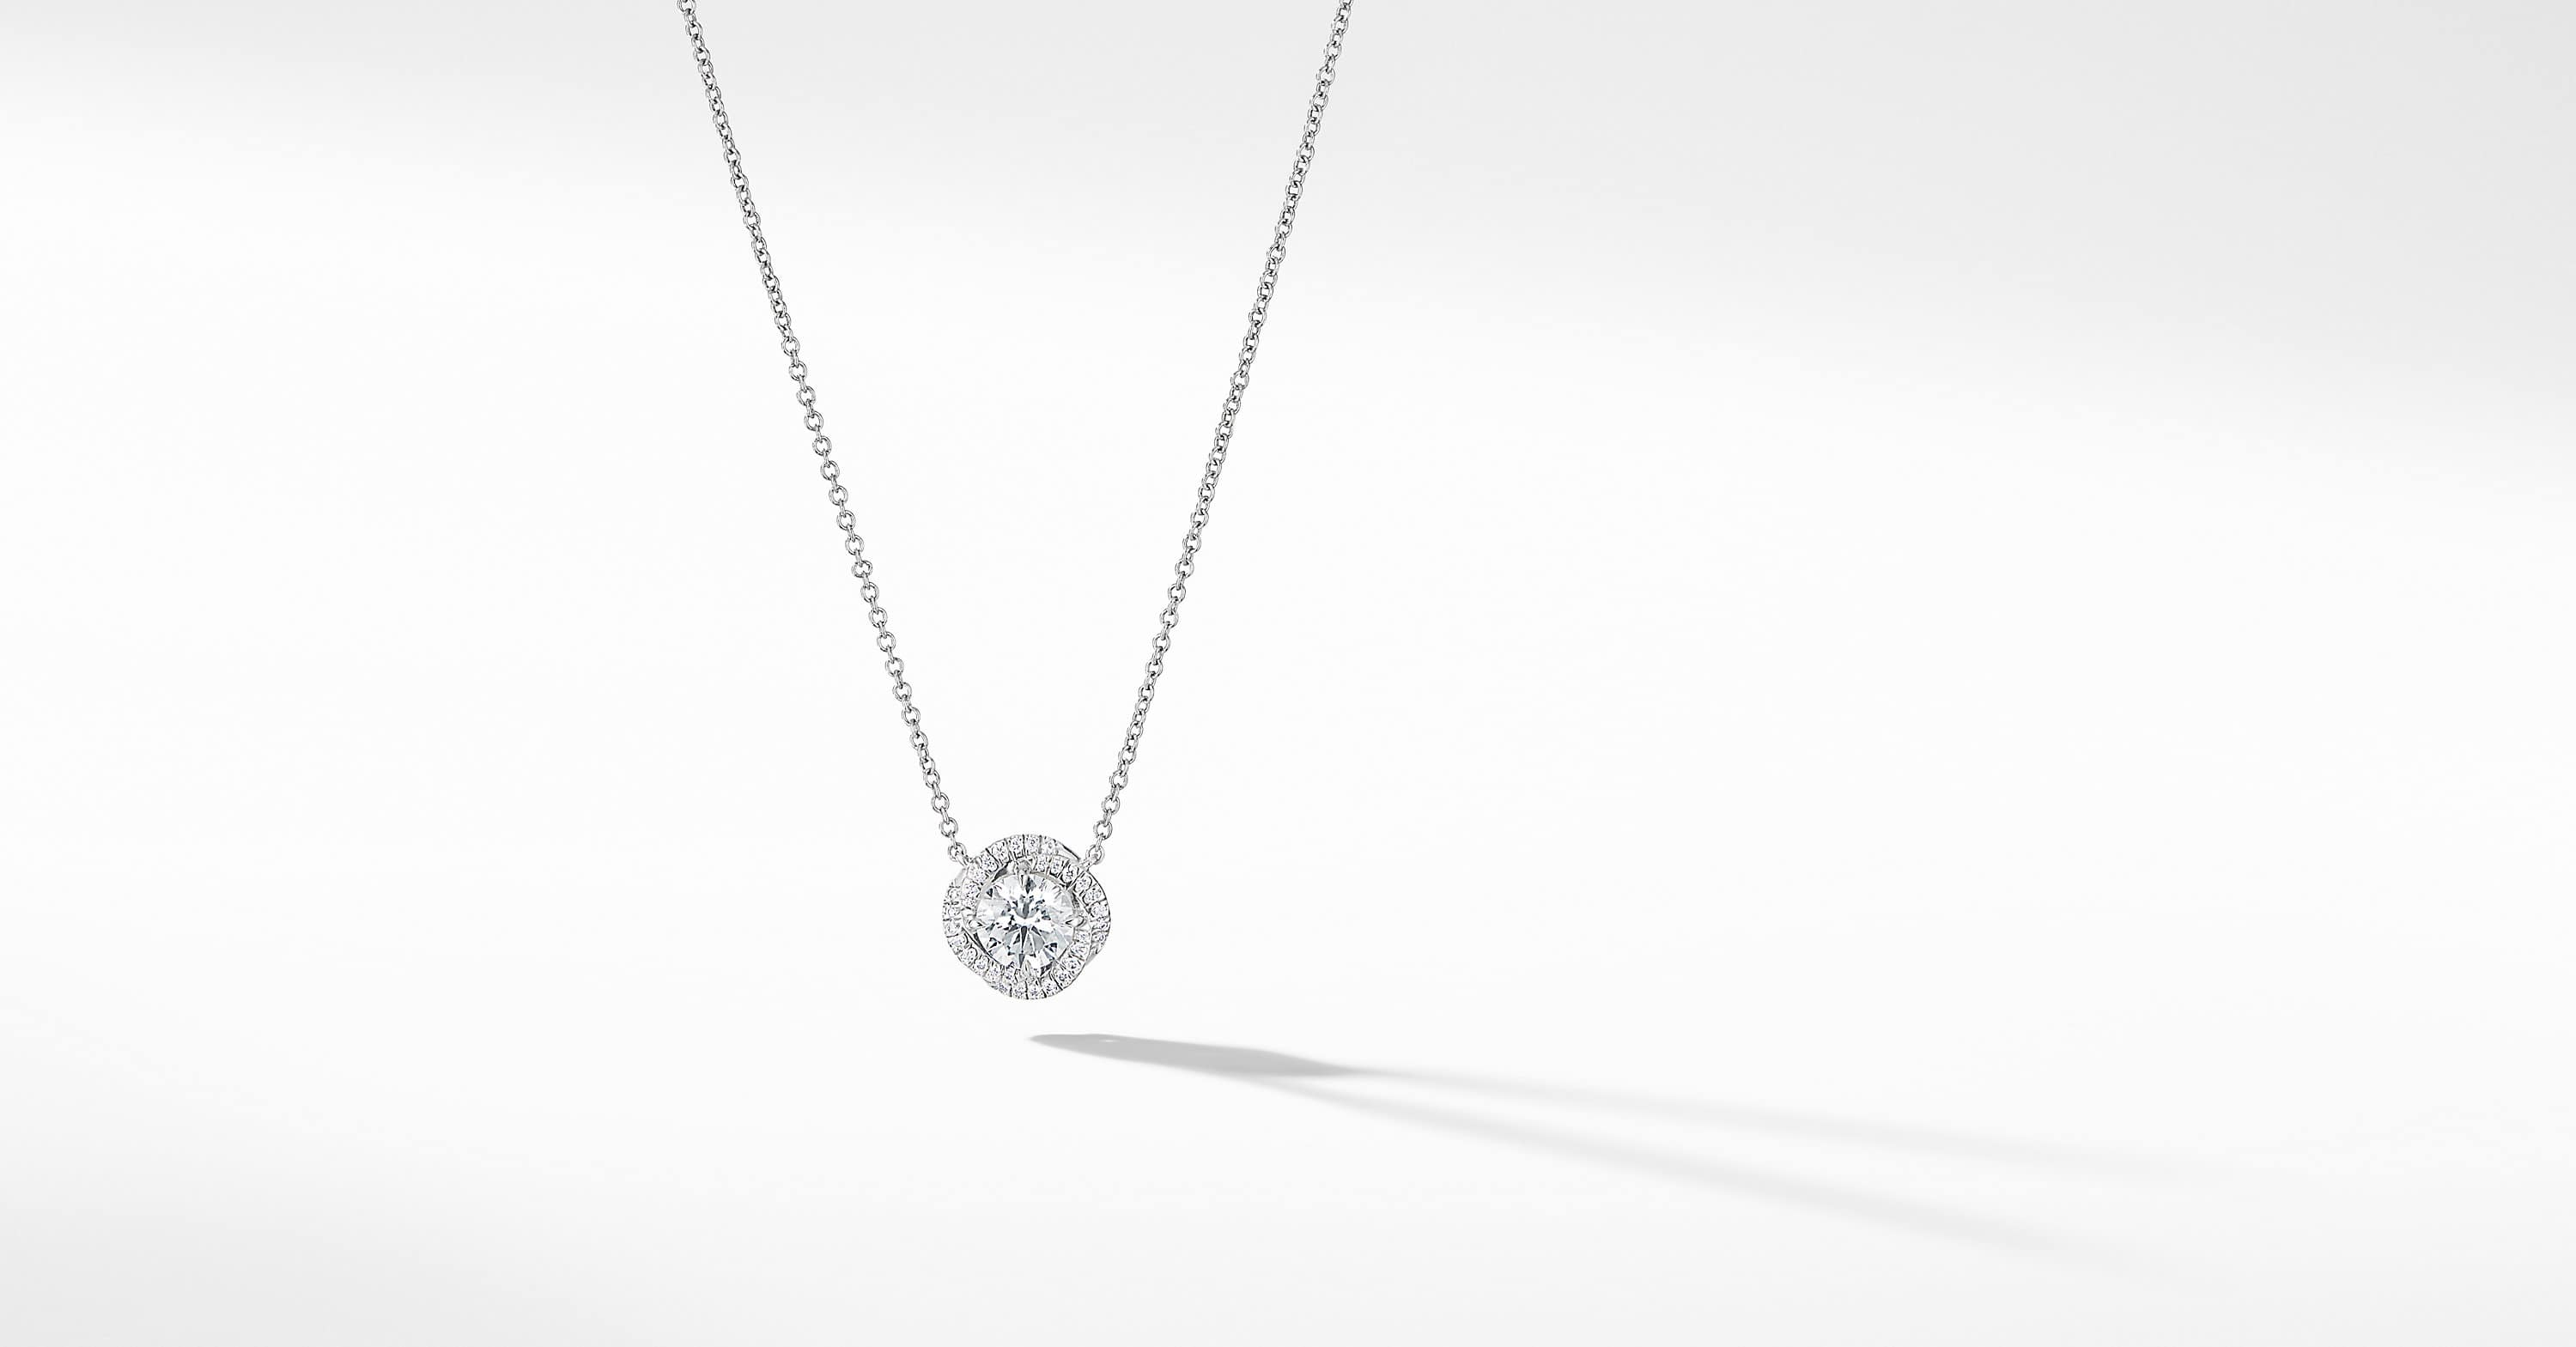 DY Lanai Pendant Necklace in 18K White Gold with Diamonds